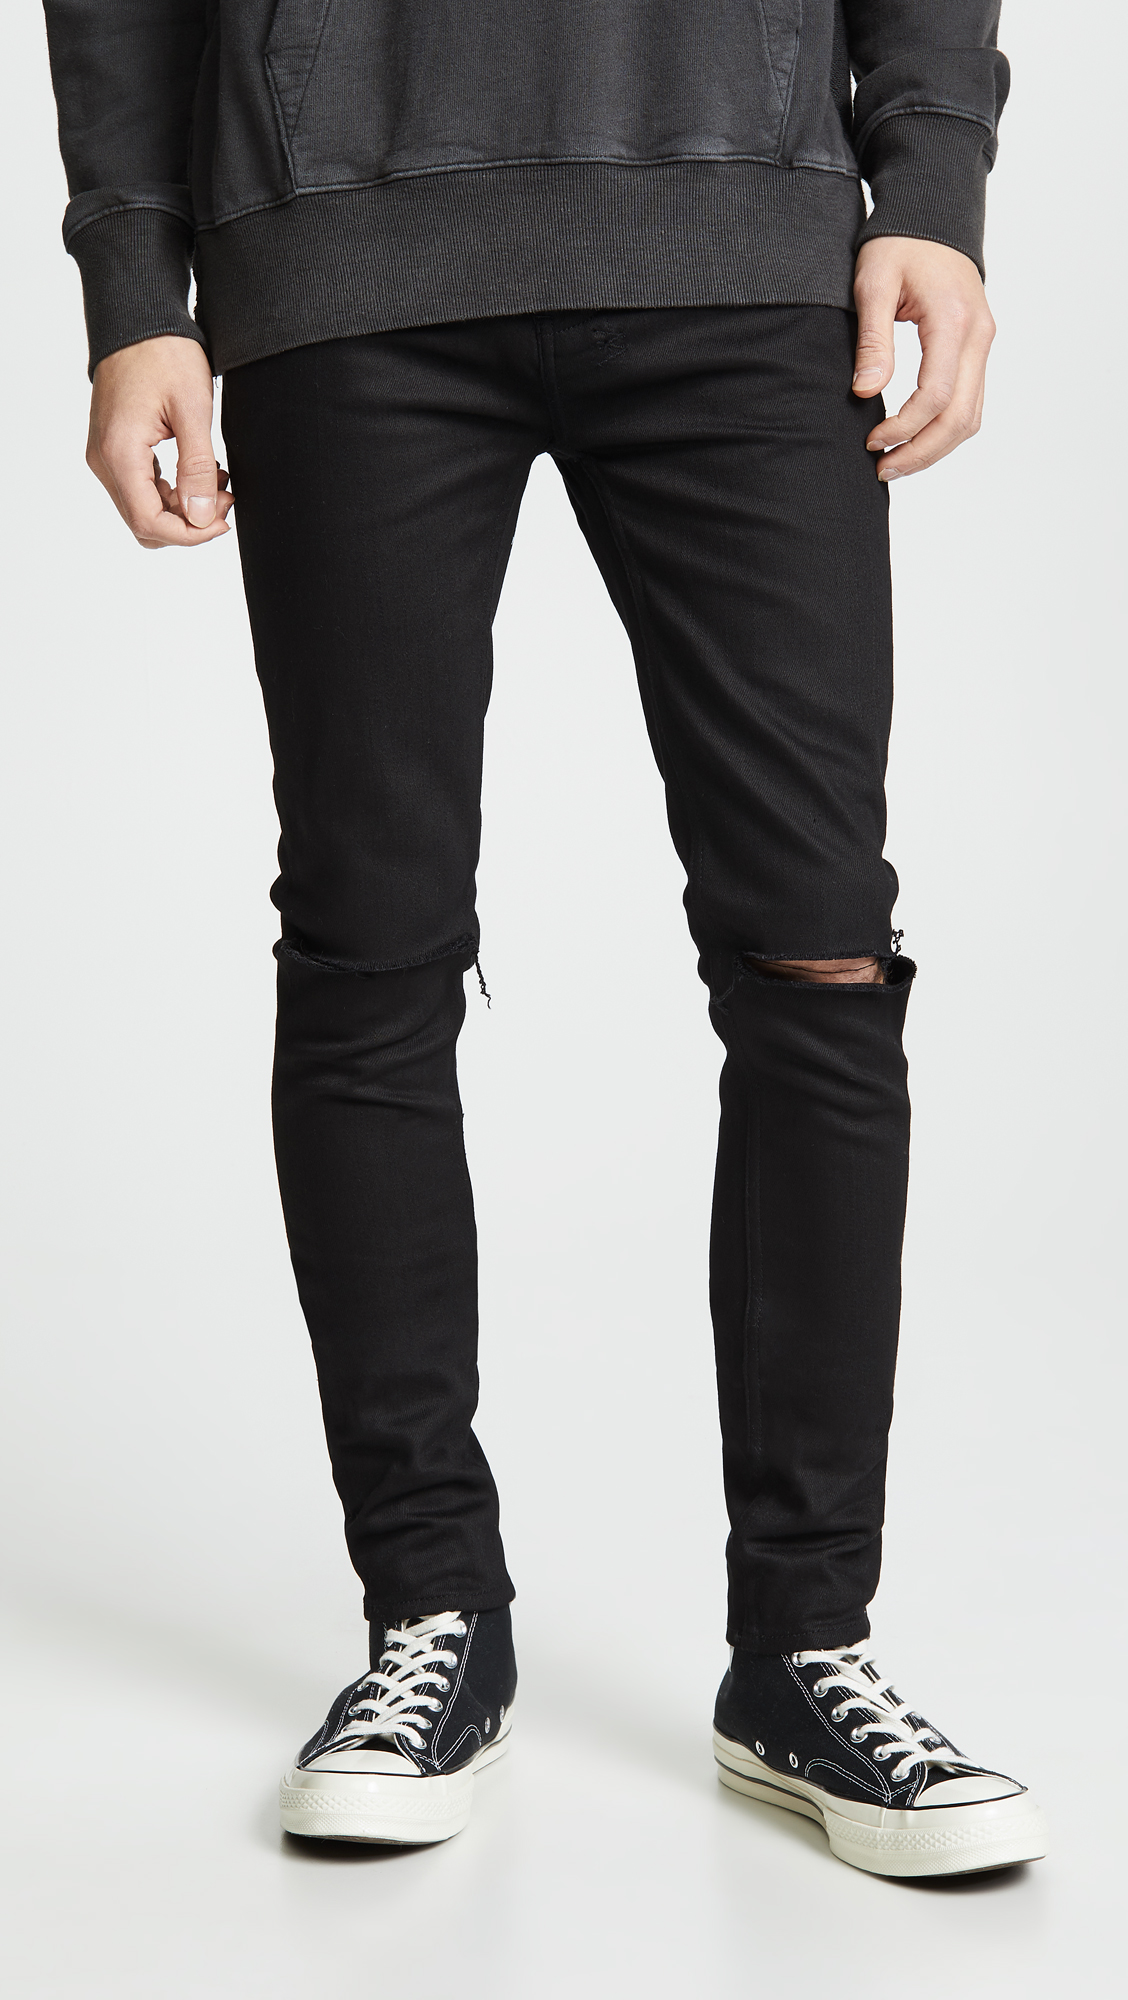 ksubi, skinny jeans, distressed jeans, black jeans, skinny jeans, stretch denim